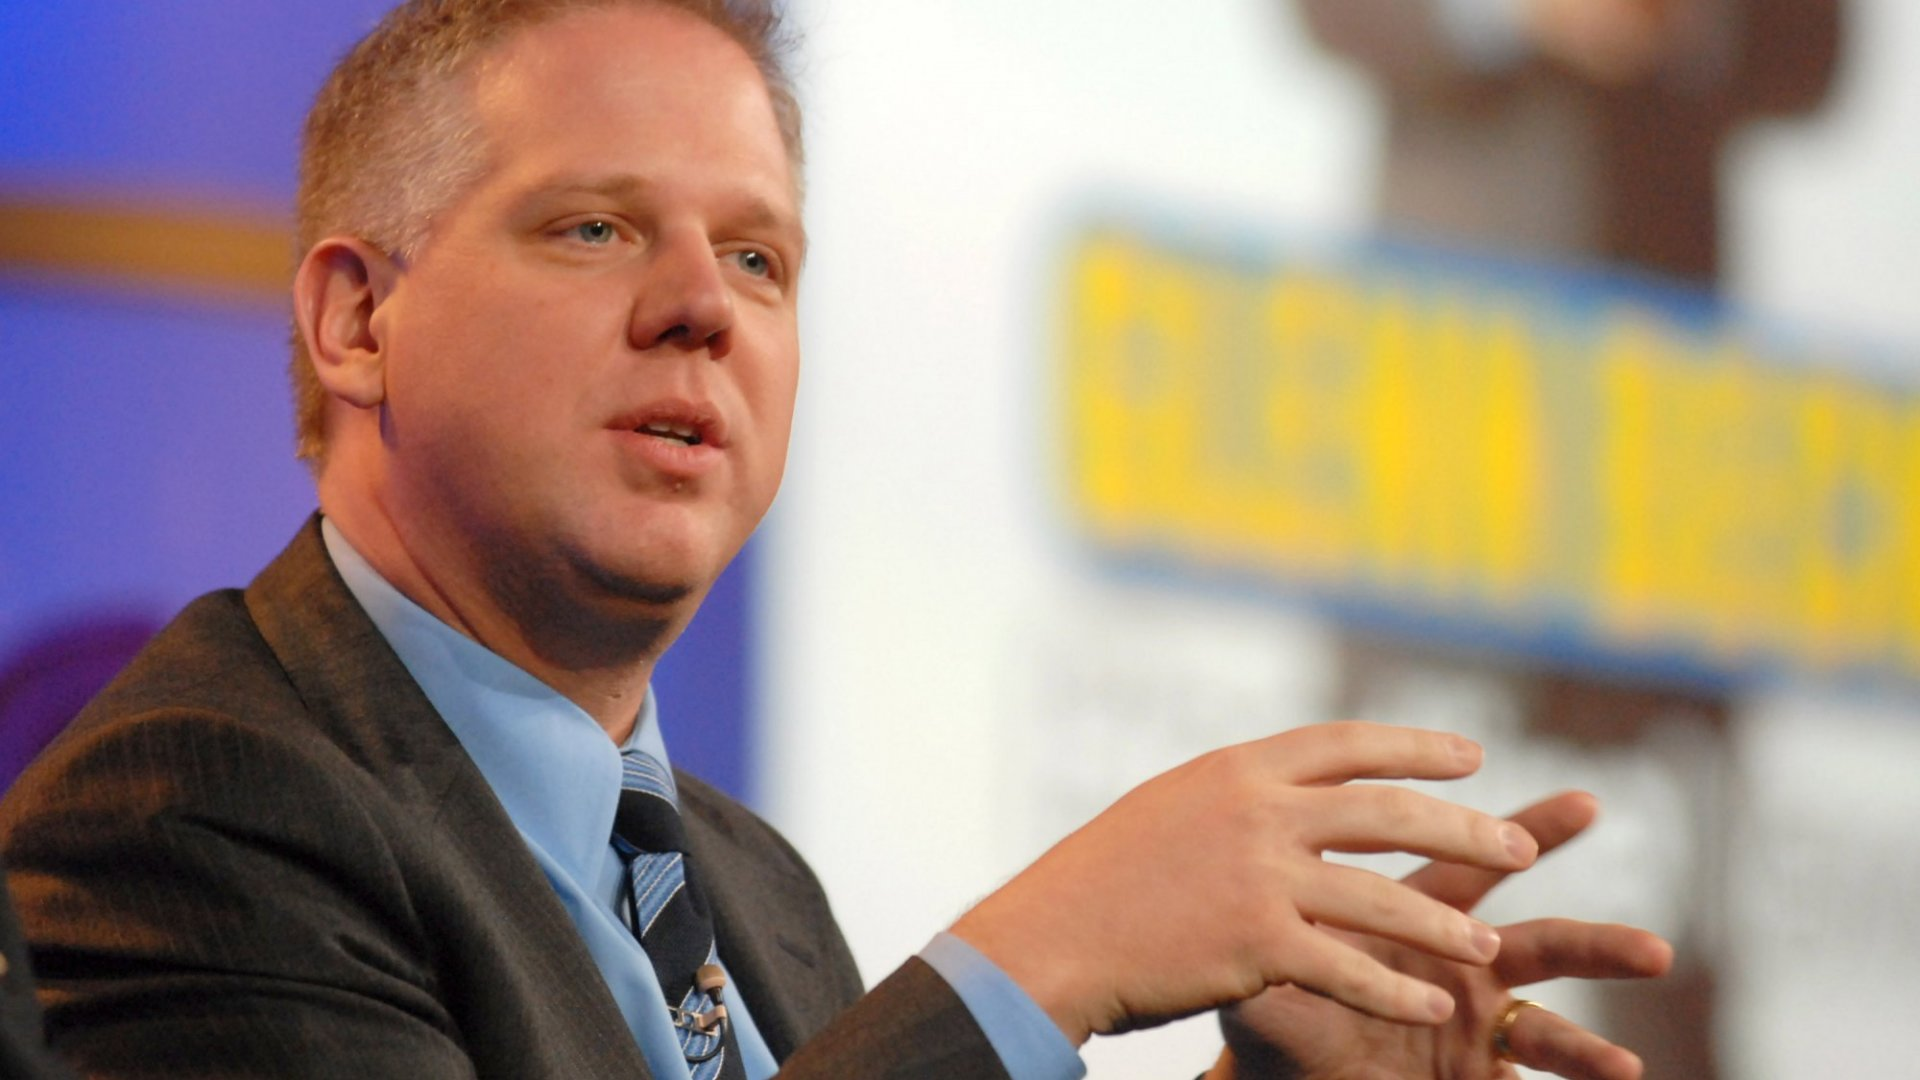 Glenn Beck: Why Innovation Depends on Startups, Not Government